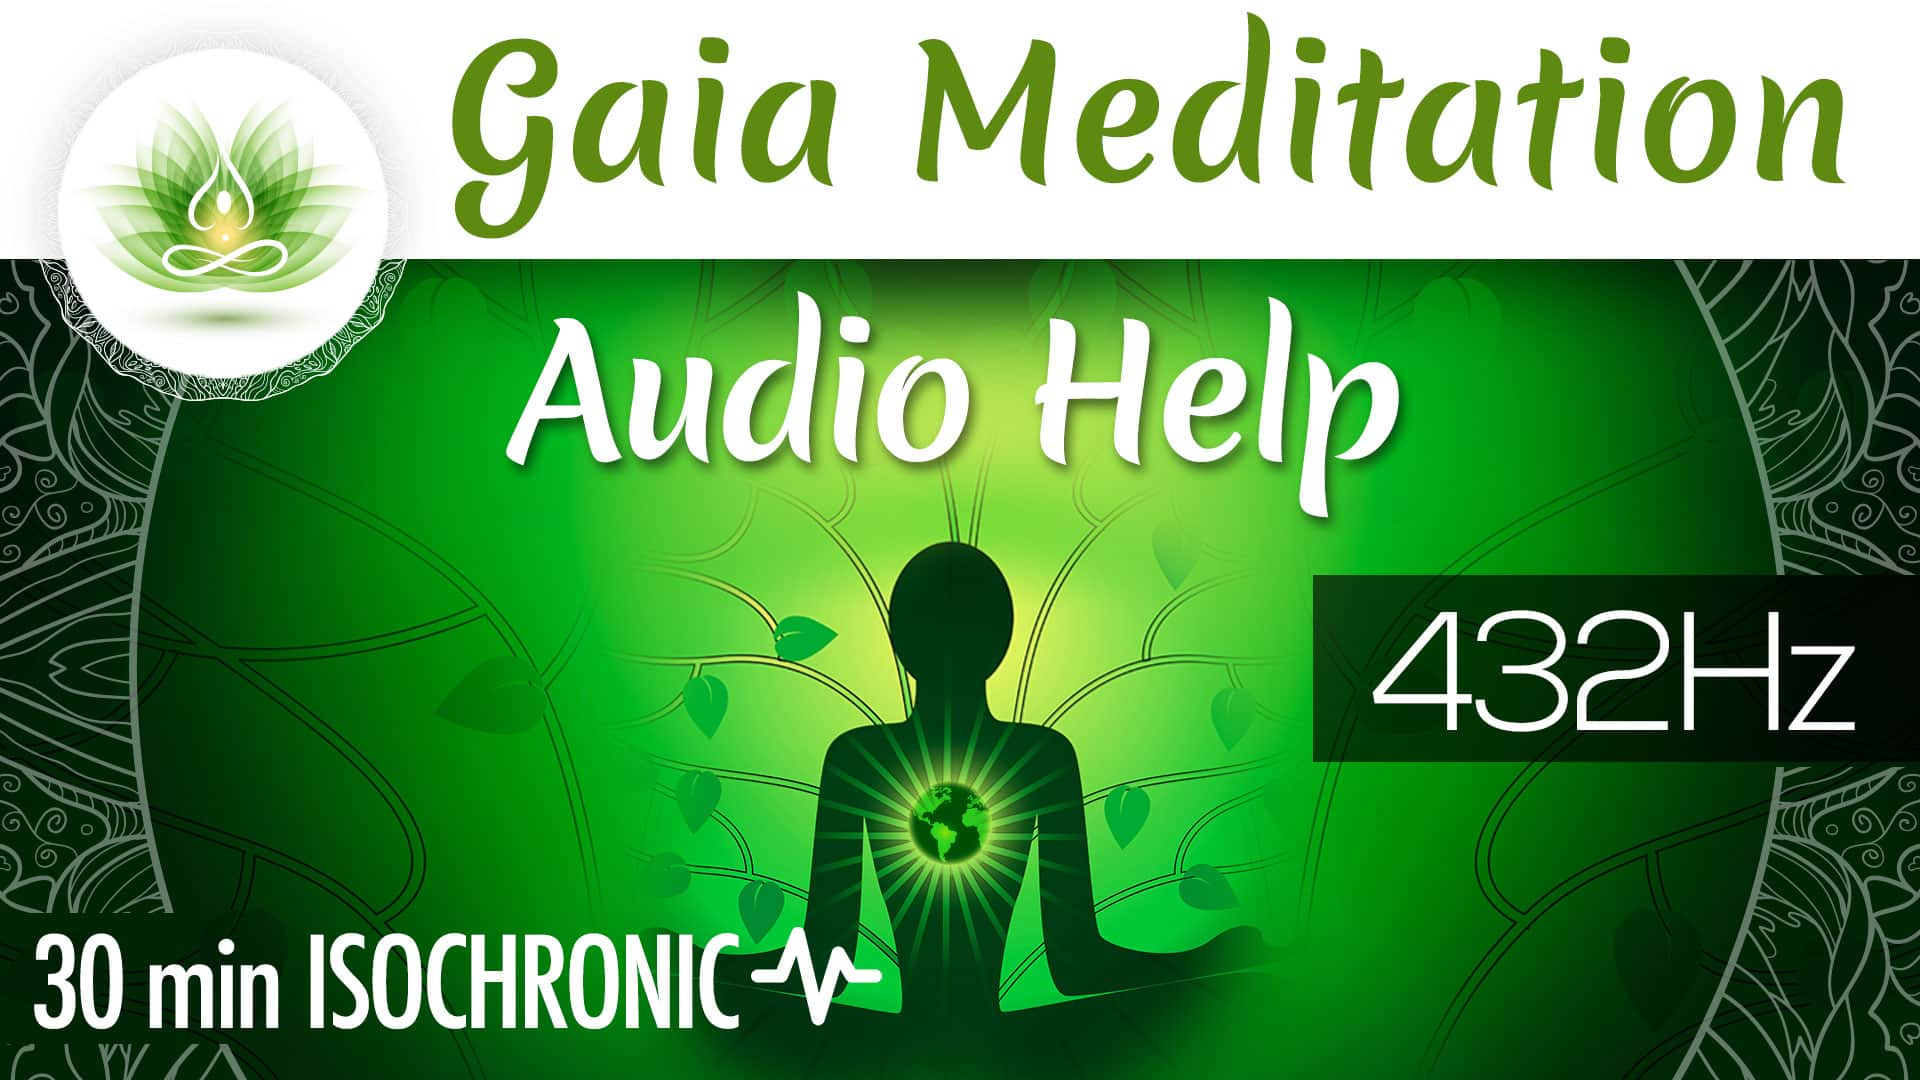 Gaia Meditation Audio Help